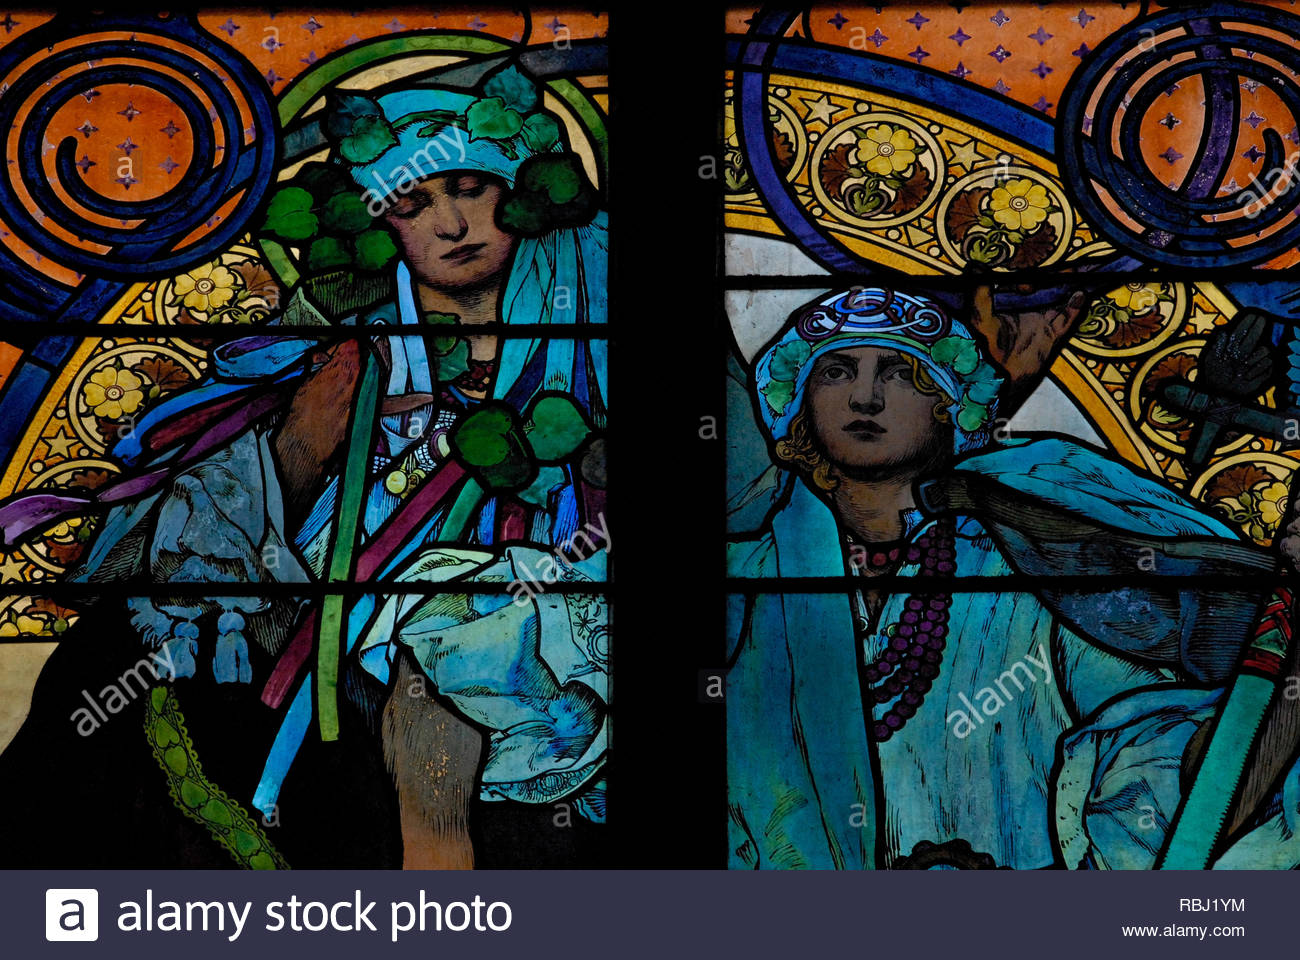 Prague, Czech Republic: Slavic symbol, Slavia, used by artist Alfred Mucha as emblem for bank that funded his cathedral glass to SS Cyril & Methodius. - Stock Image